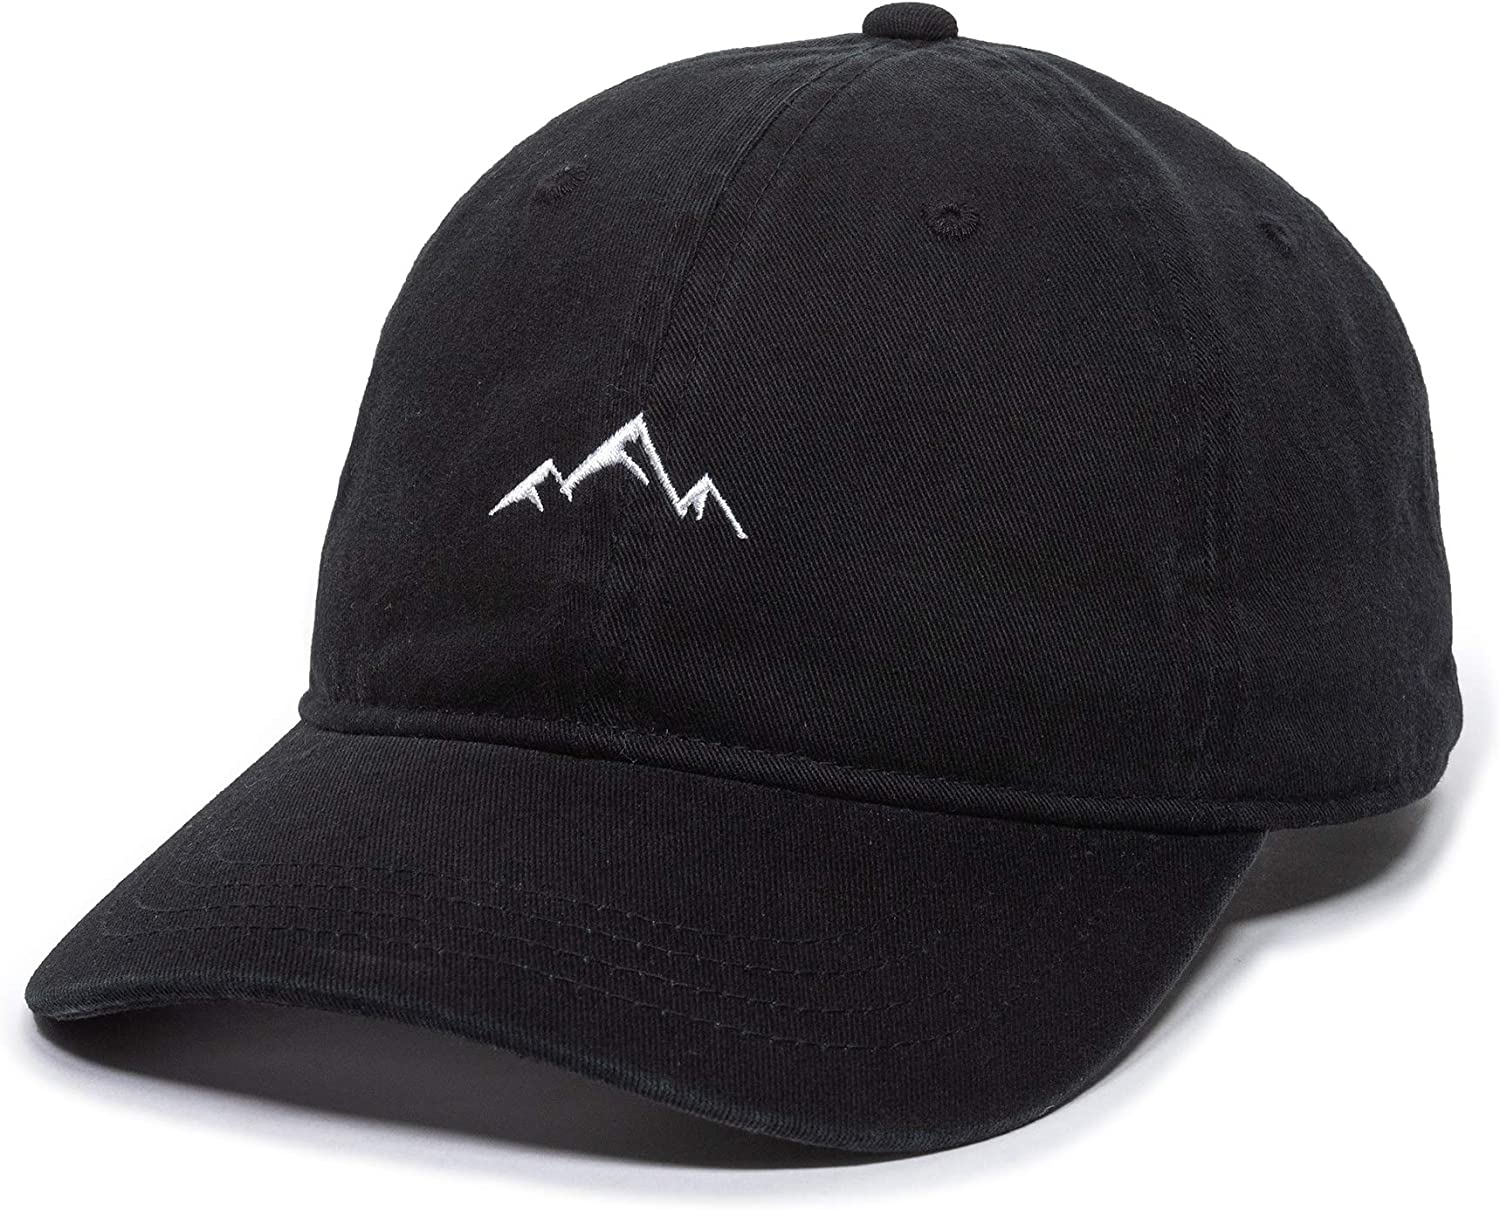 Outdoor Cap -Adult Mountain Dad Hat-Unstructured Soft Cotton Cap, Black, One Size (AMZ4067459)